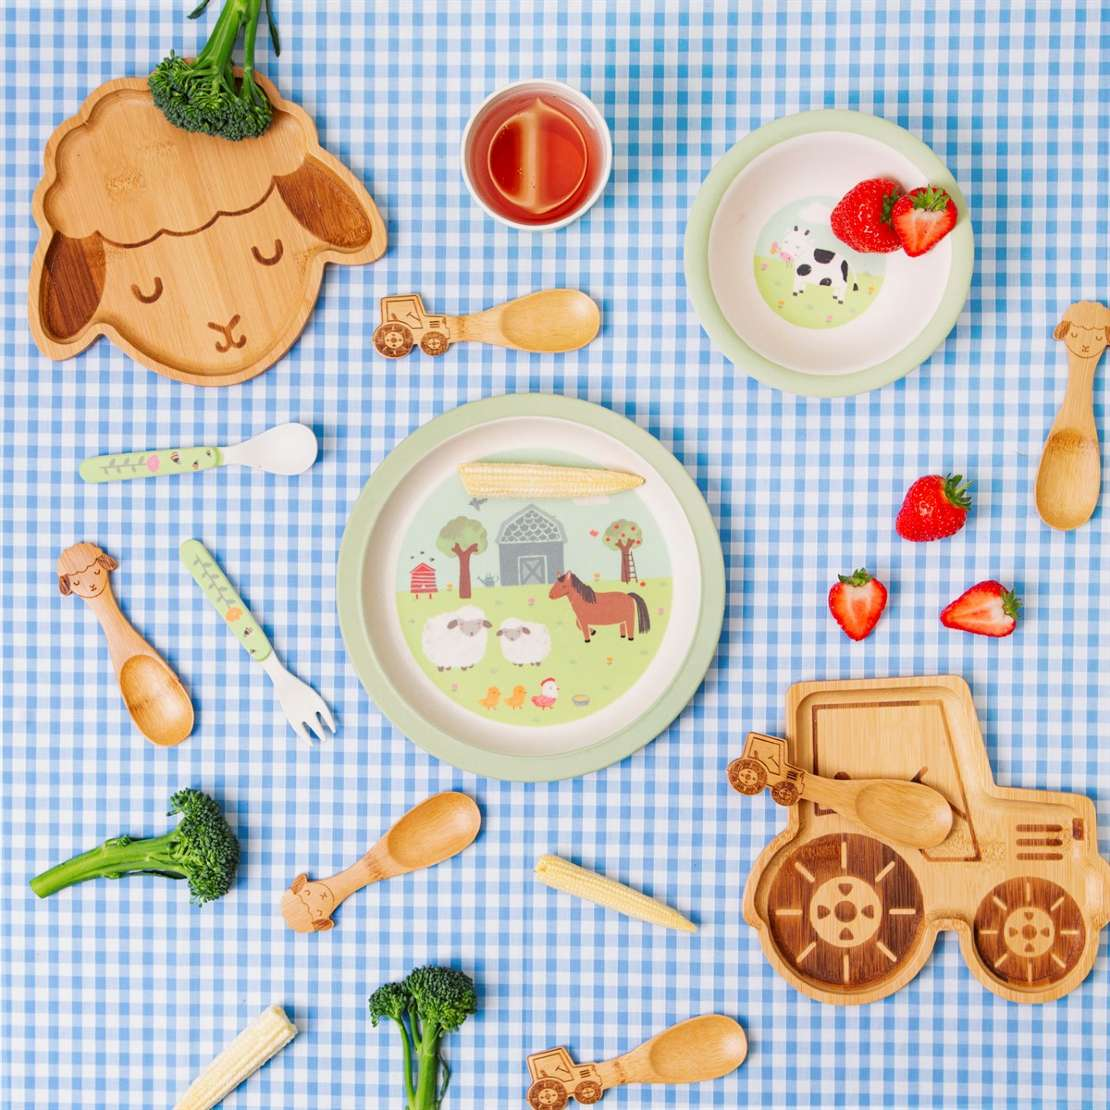 sas and belle bamboo table sets are great for picnics